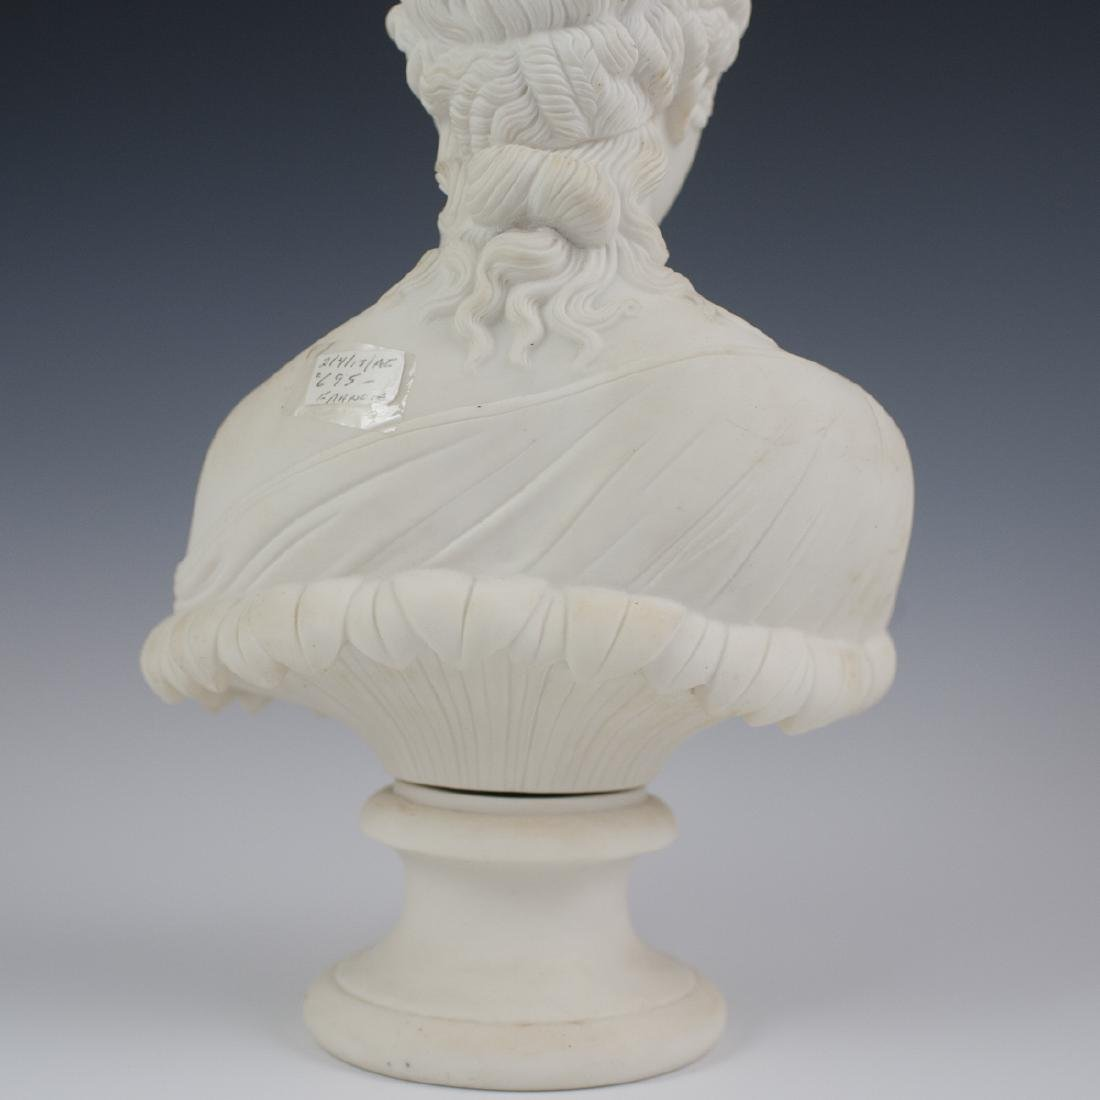 Antique French Parian Ware Bust - 4